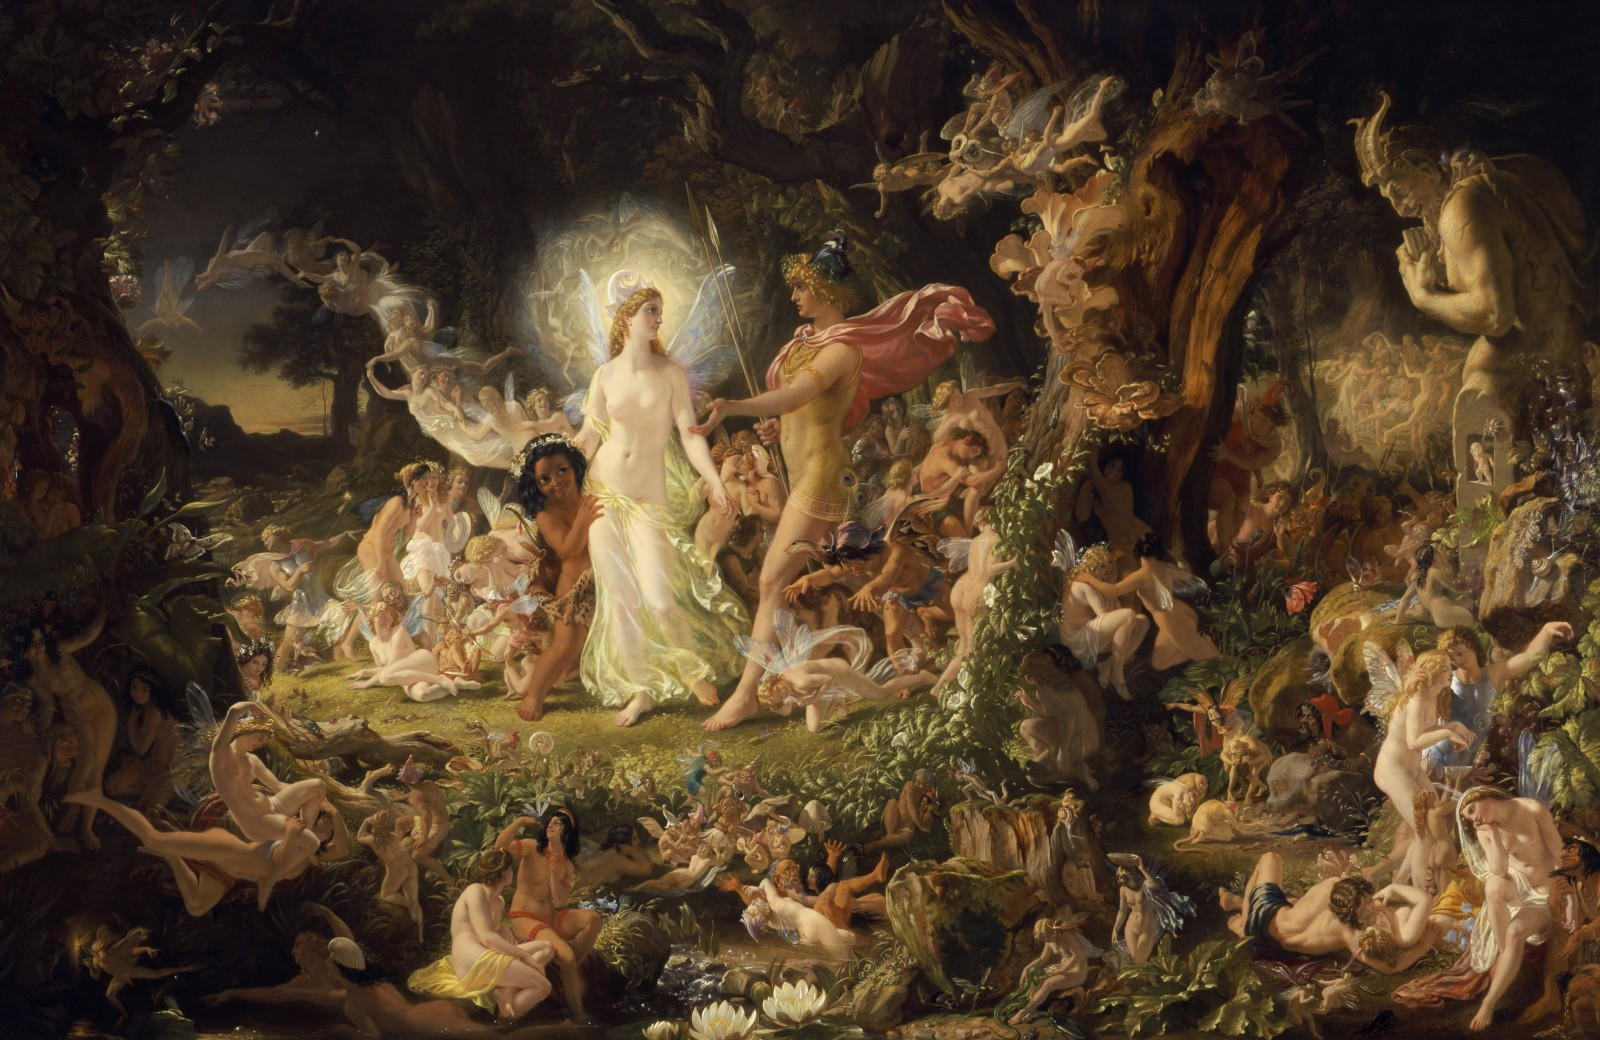 Oberon and Titania